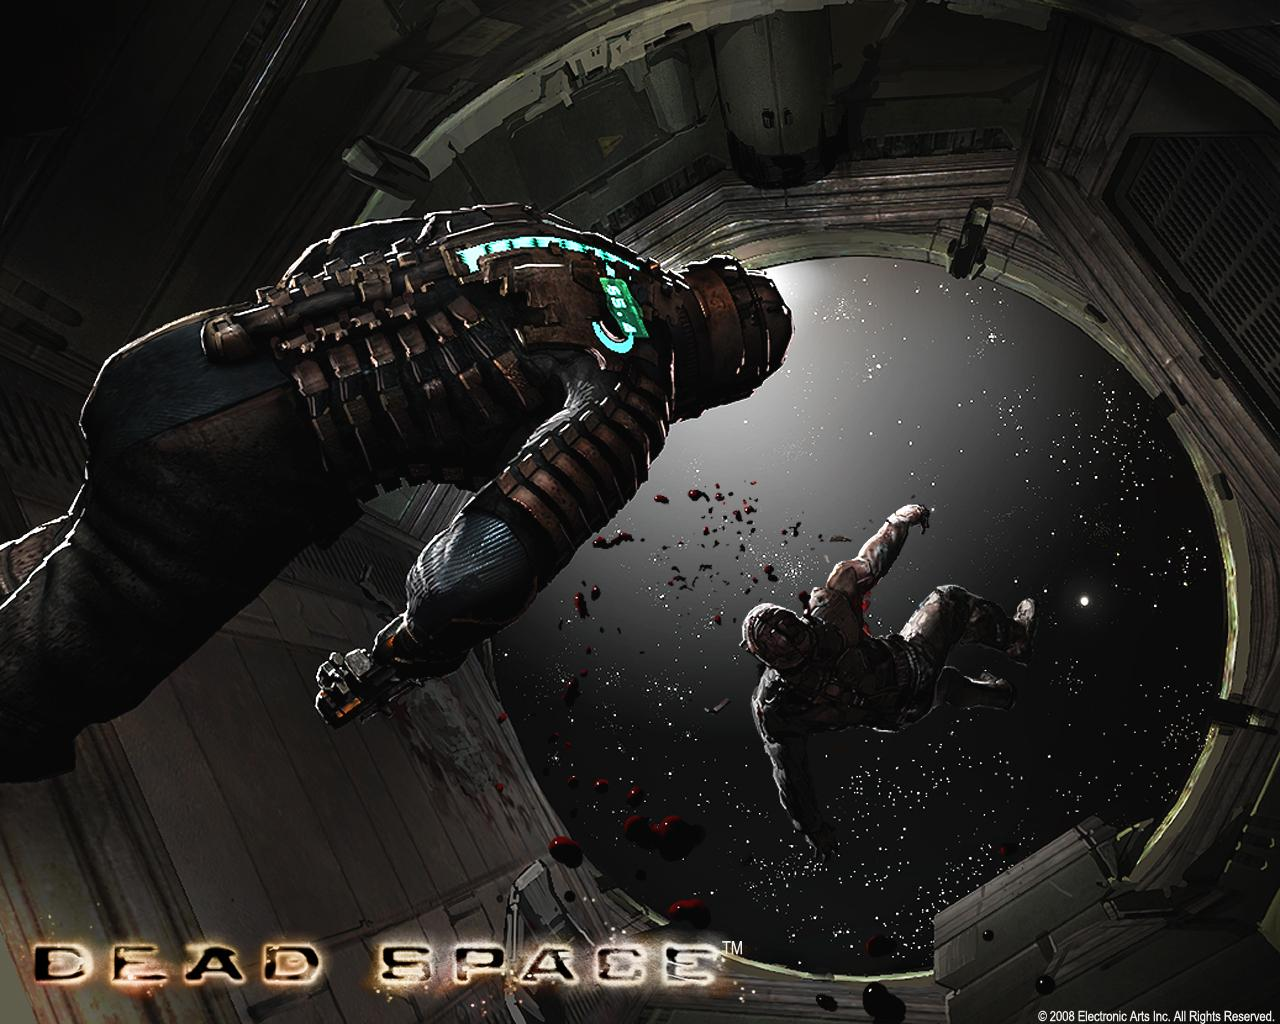 Xbox 360 dead space game manual game instruction book - Deep space 3 wallpaper engine ...